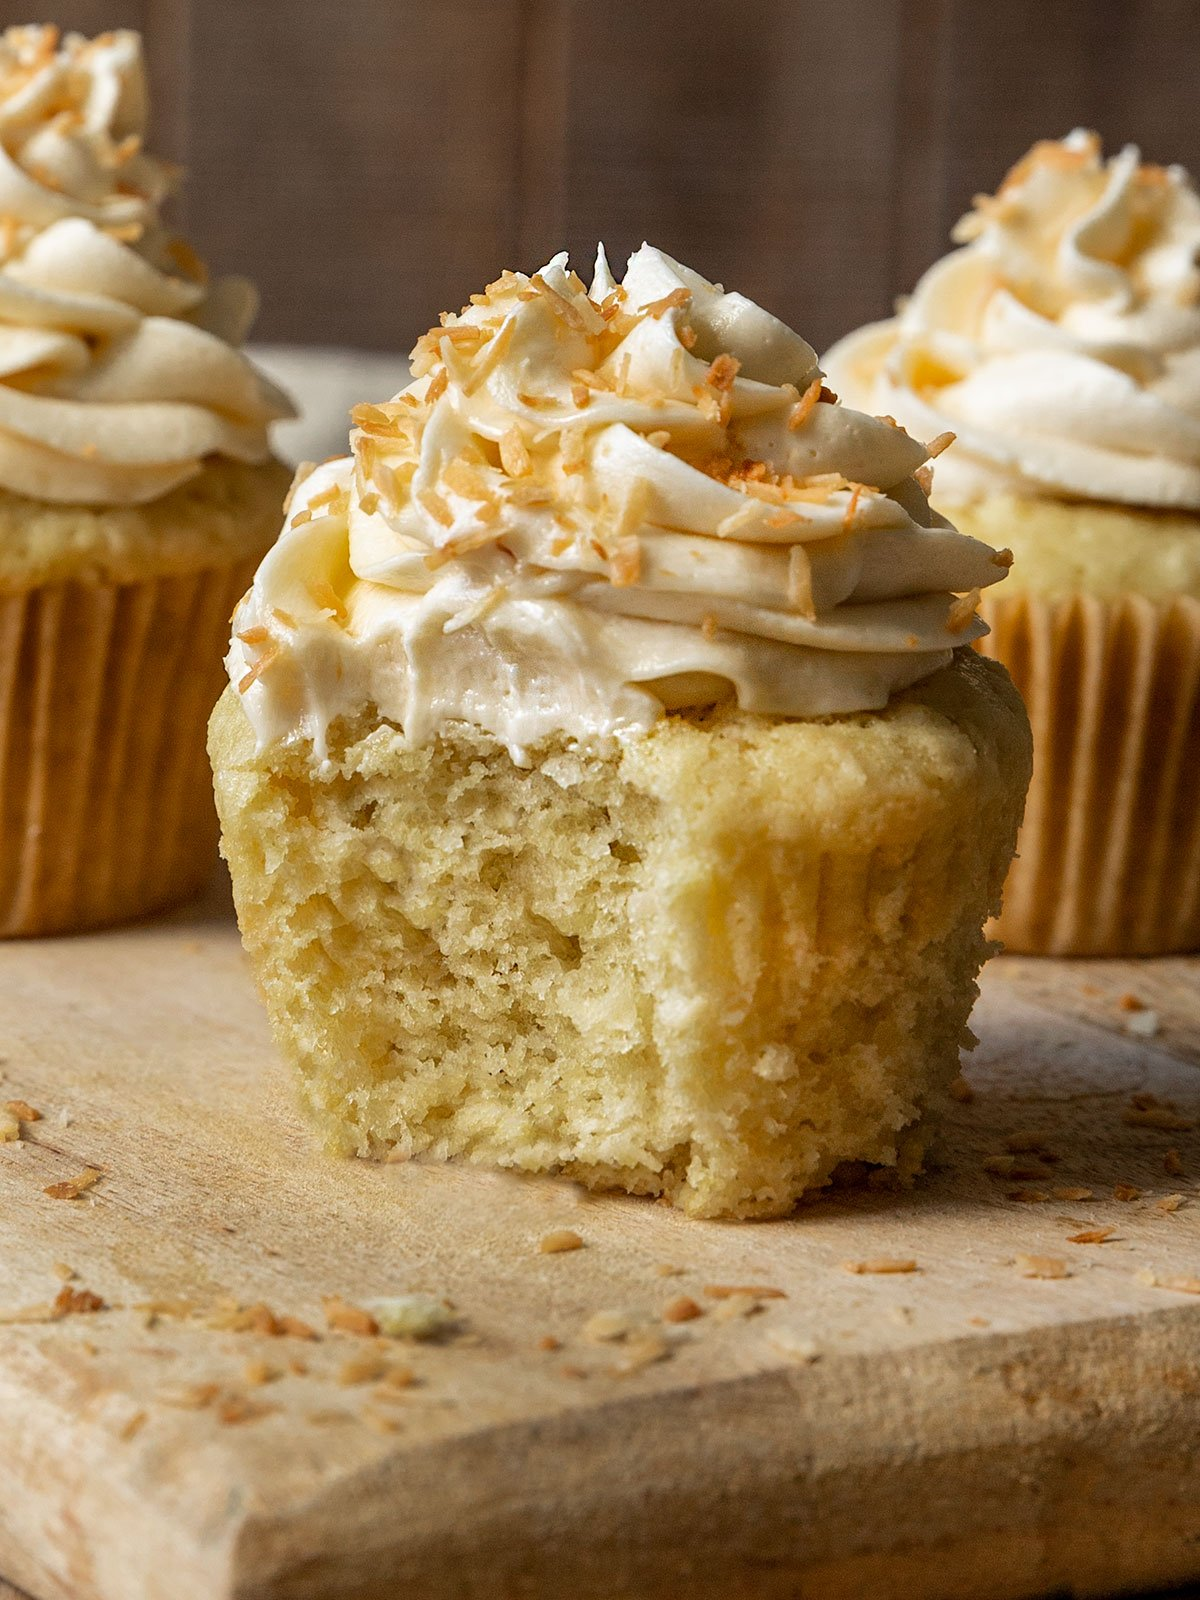 coconut cupcake with a bite taken out to show fluffy texture inside